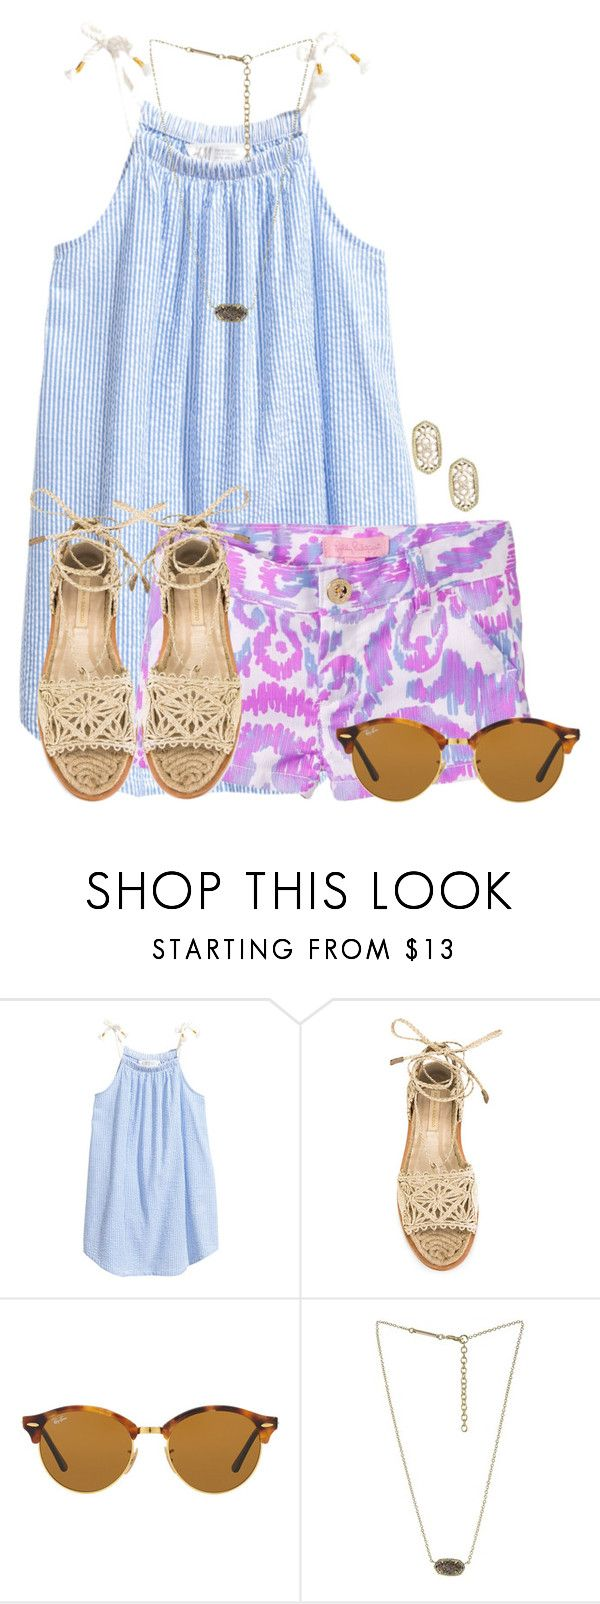 """""""My pops is halfway through the Boston Marathon☀️"""" by flroasburn ❤ liked on Polyvore featuring Lilly Pulitzer, Paloma Barceló, Ray-Ban and Kendra Scott"""